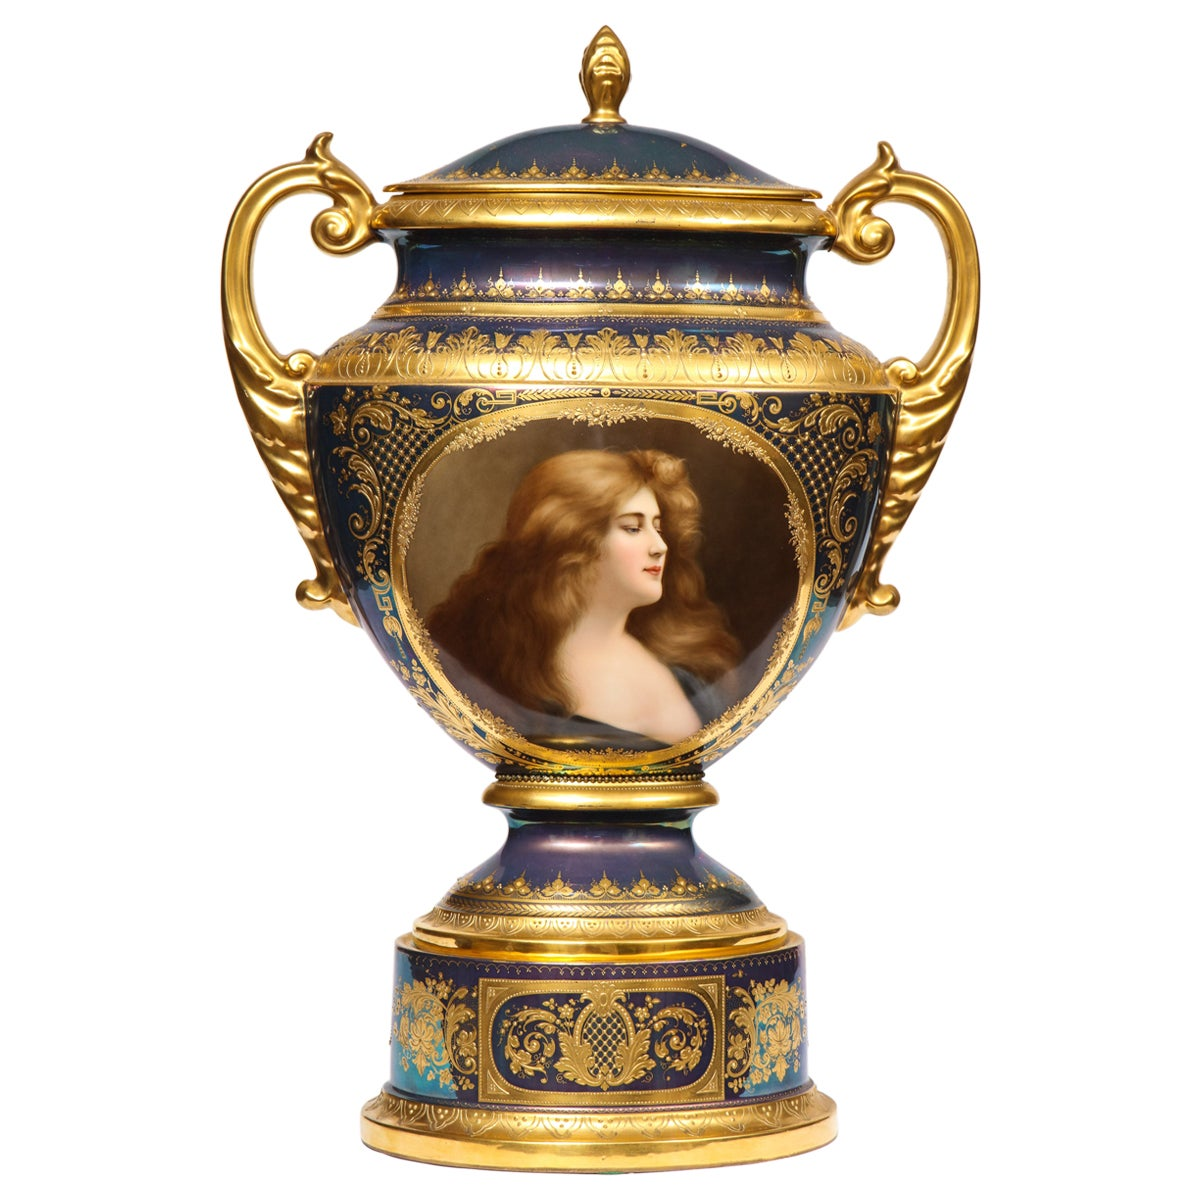 Monumental Royal Vienna Iridescent Porcelain Portrait Vase and Cover, Wagner